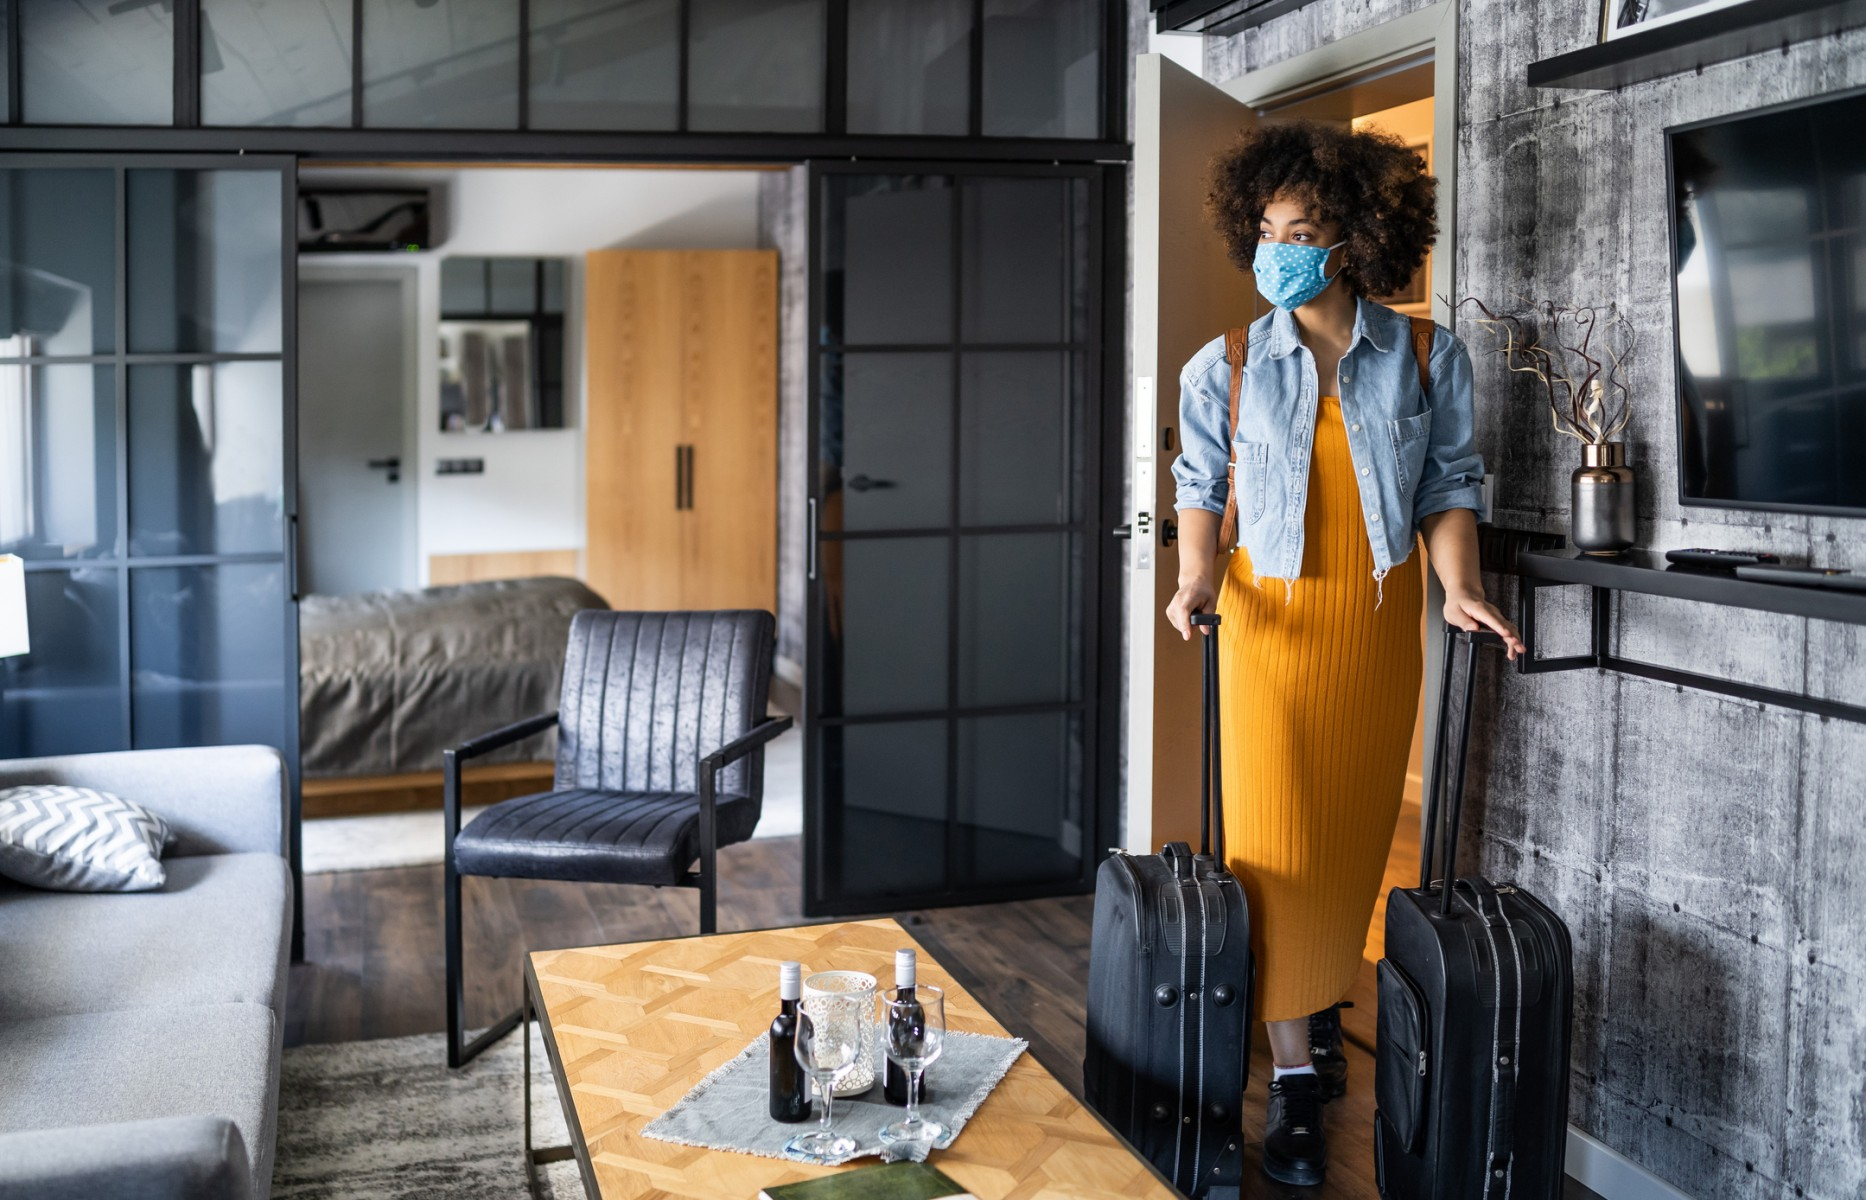 With COVID-19 infections rising across the U.S., risk mitigation is essential for anyone planning to travel  during the 2020 holiday season, says a Cedars-Sinai infectious disease expert. Photo by Getty.